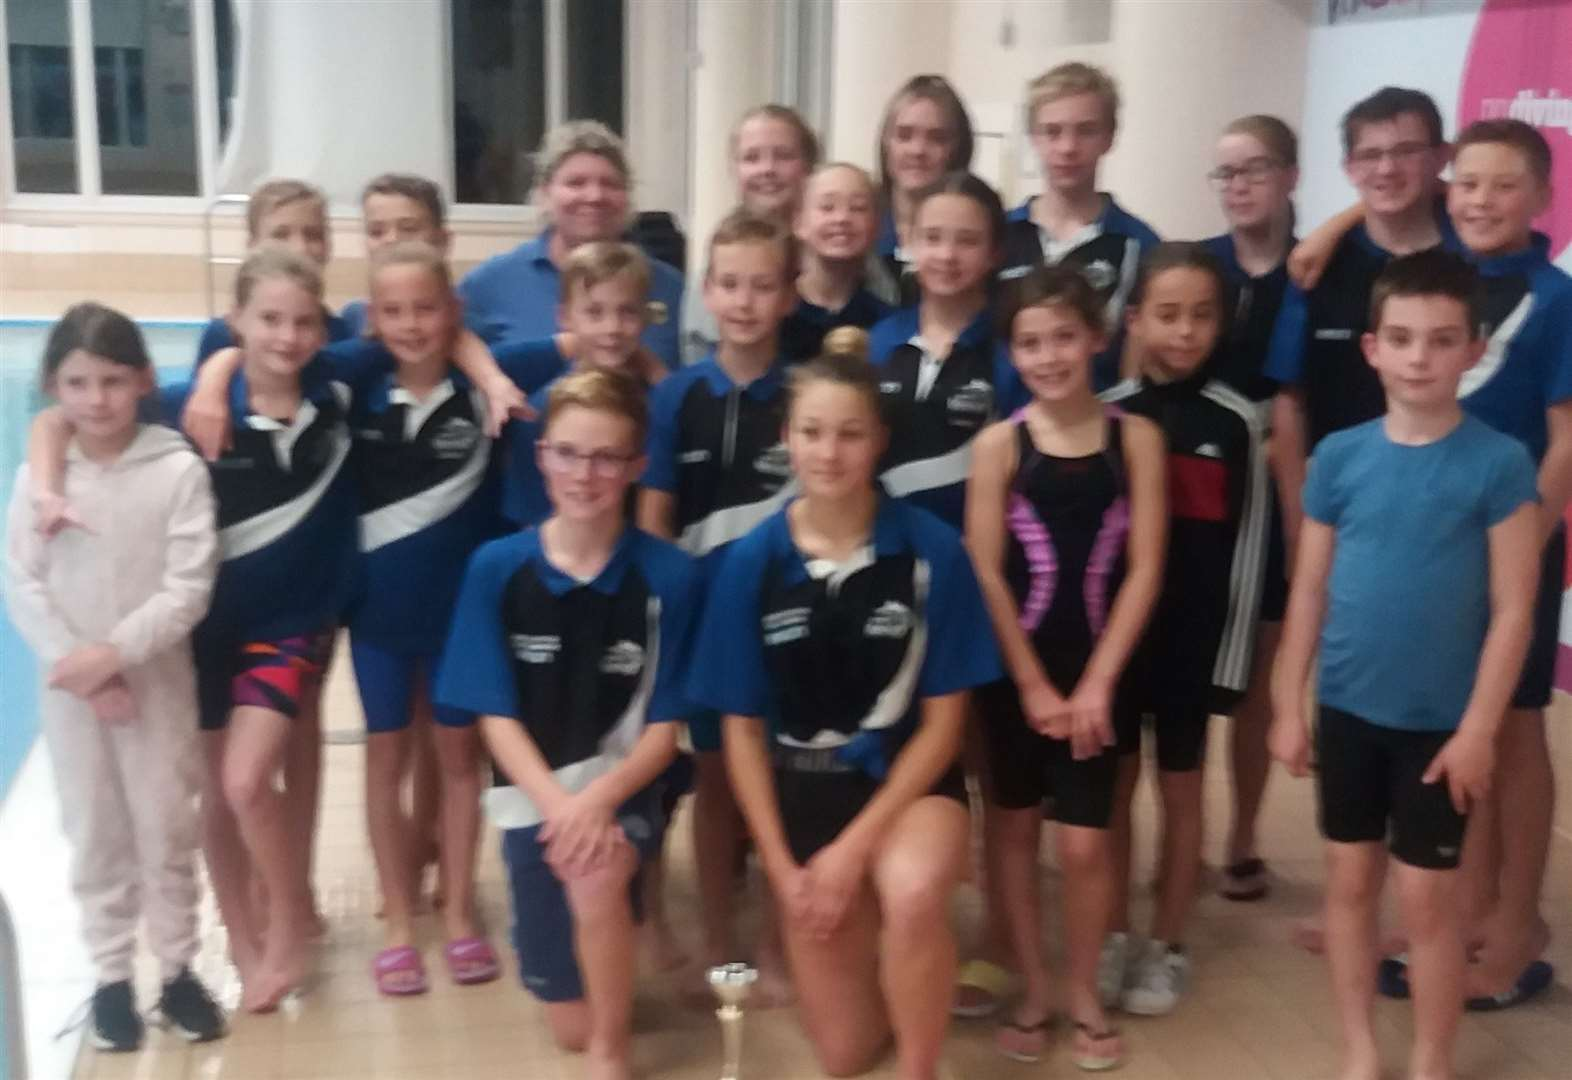 Swimming: who bagged five wins and six PB times for Marlins?